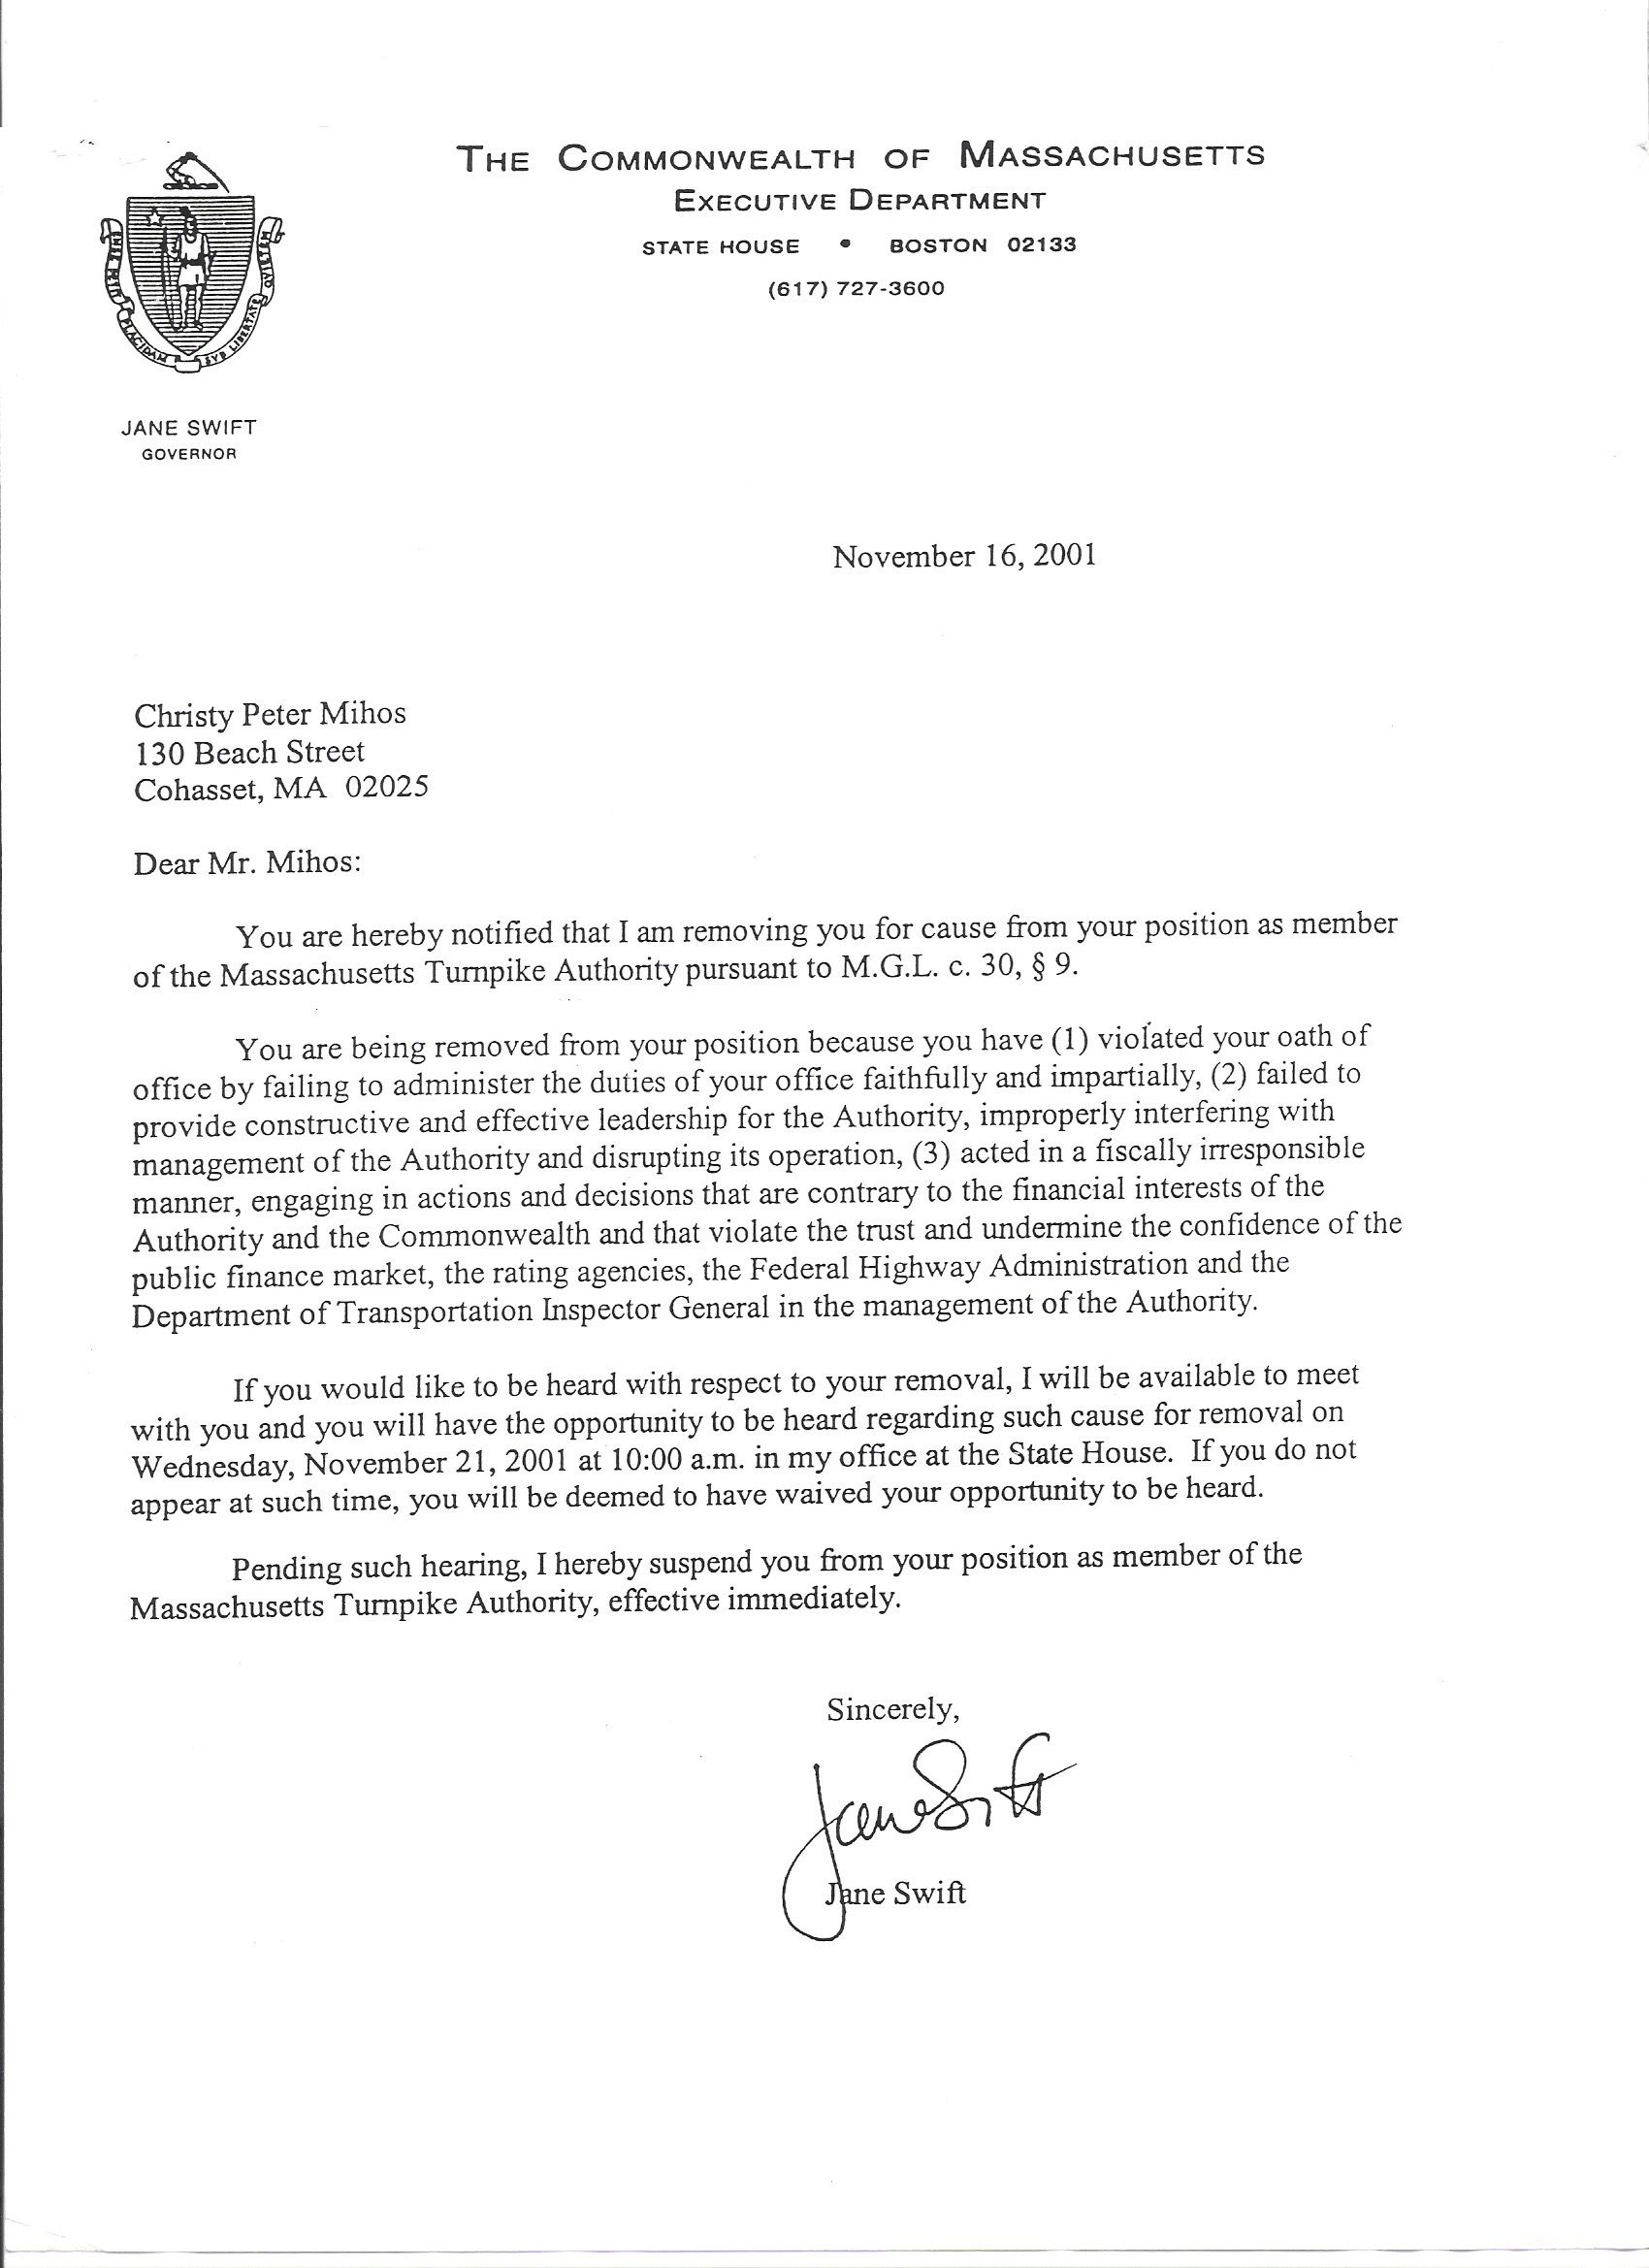 Public Record Removal Letter Template - Ficial Letter Removal From Jane Swift Rotten to the